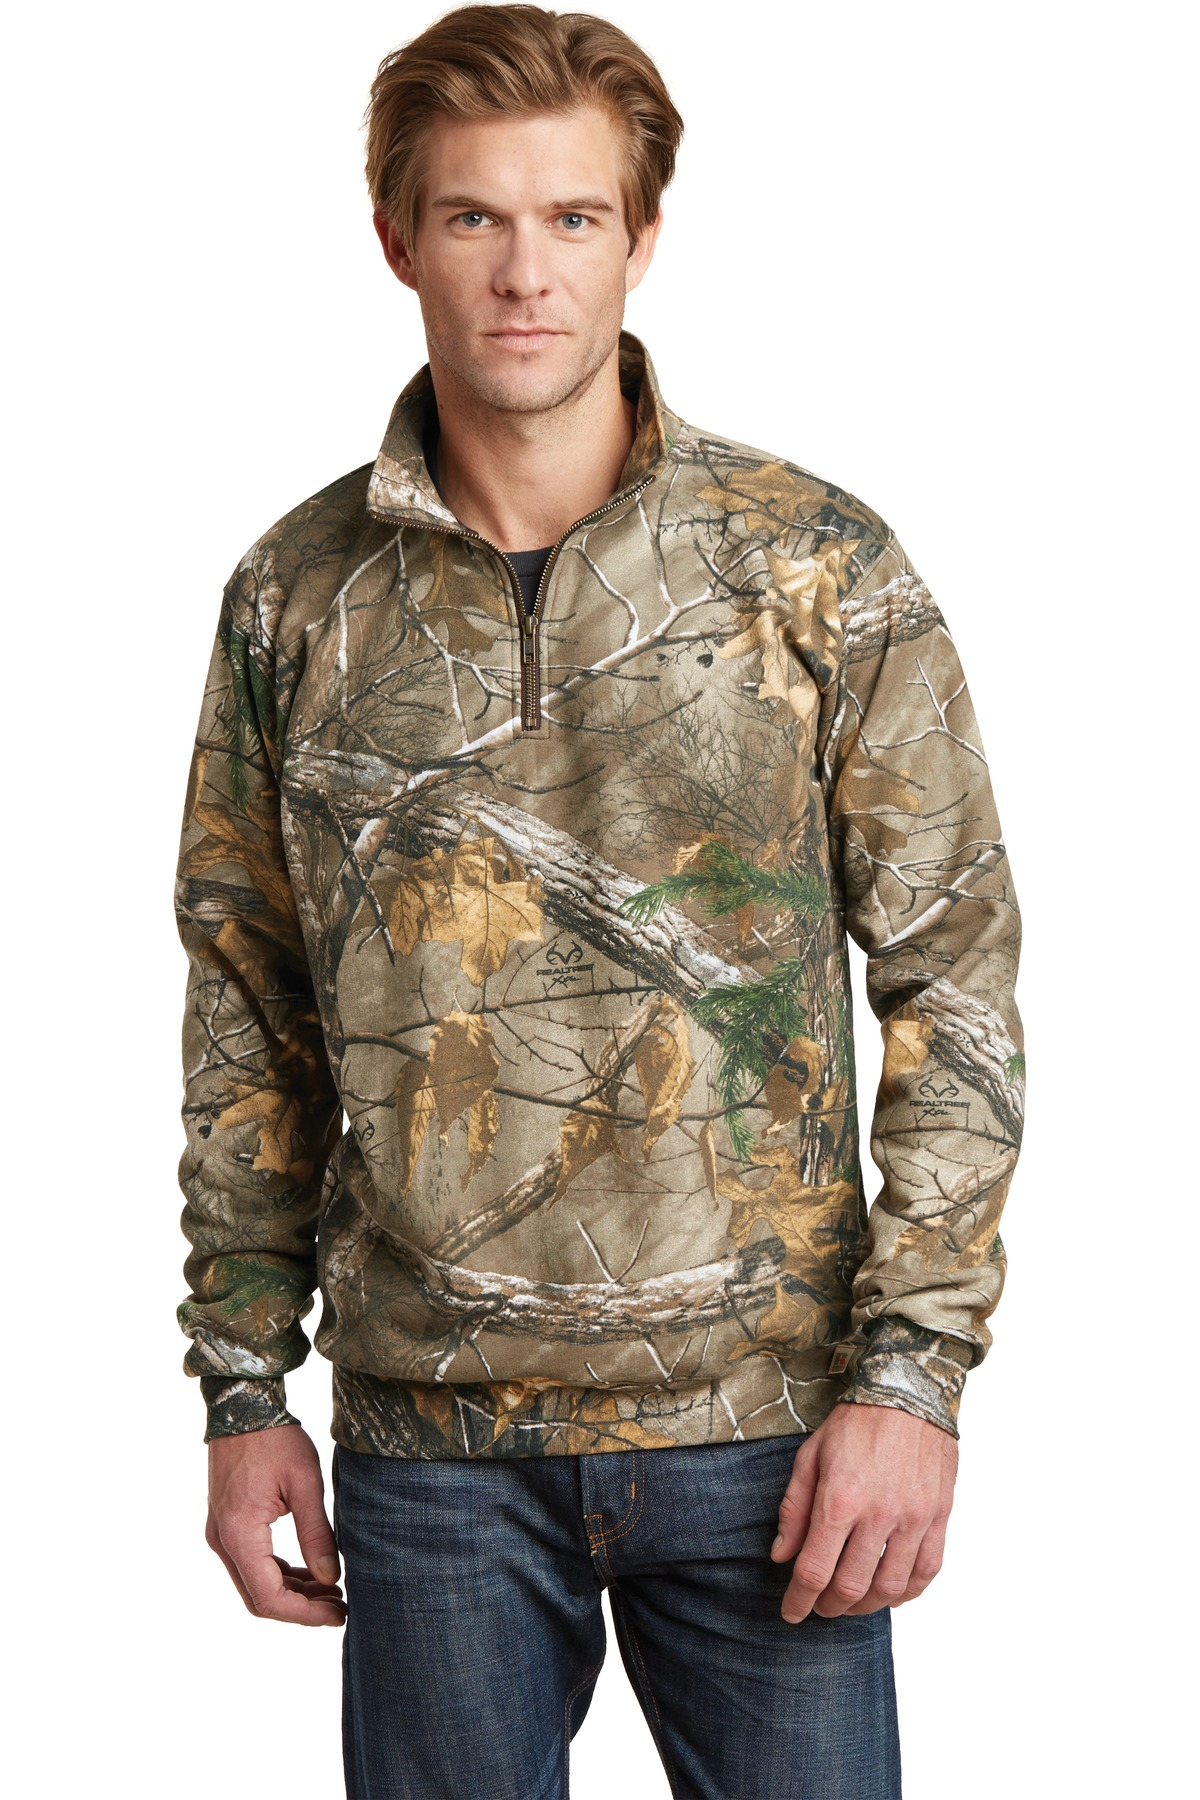 Russell Outdoors ™  Realtree ®  1/4-Zip Sweatshirt. RO78Q - Realtree Xtra